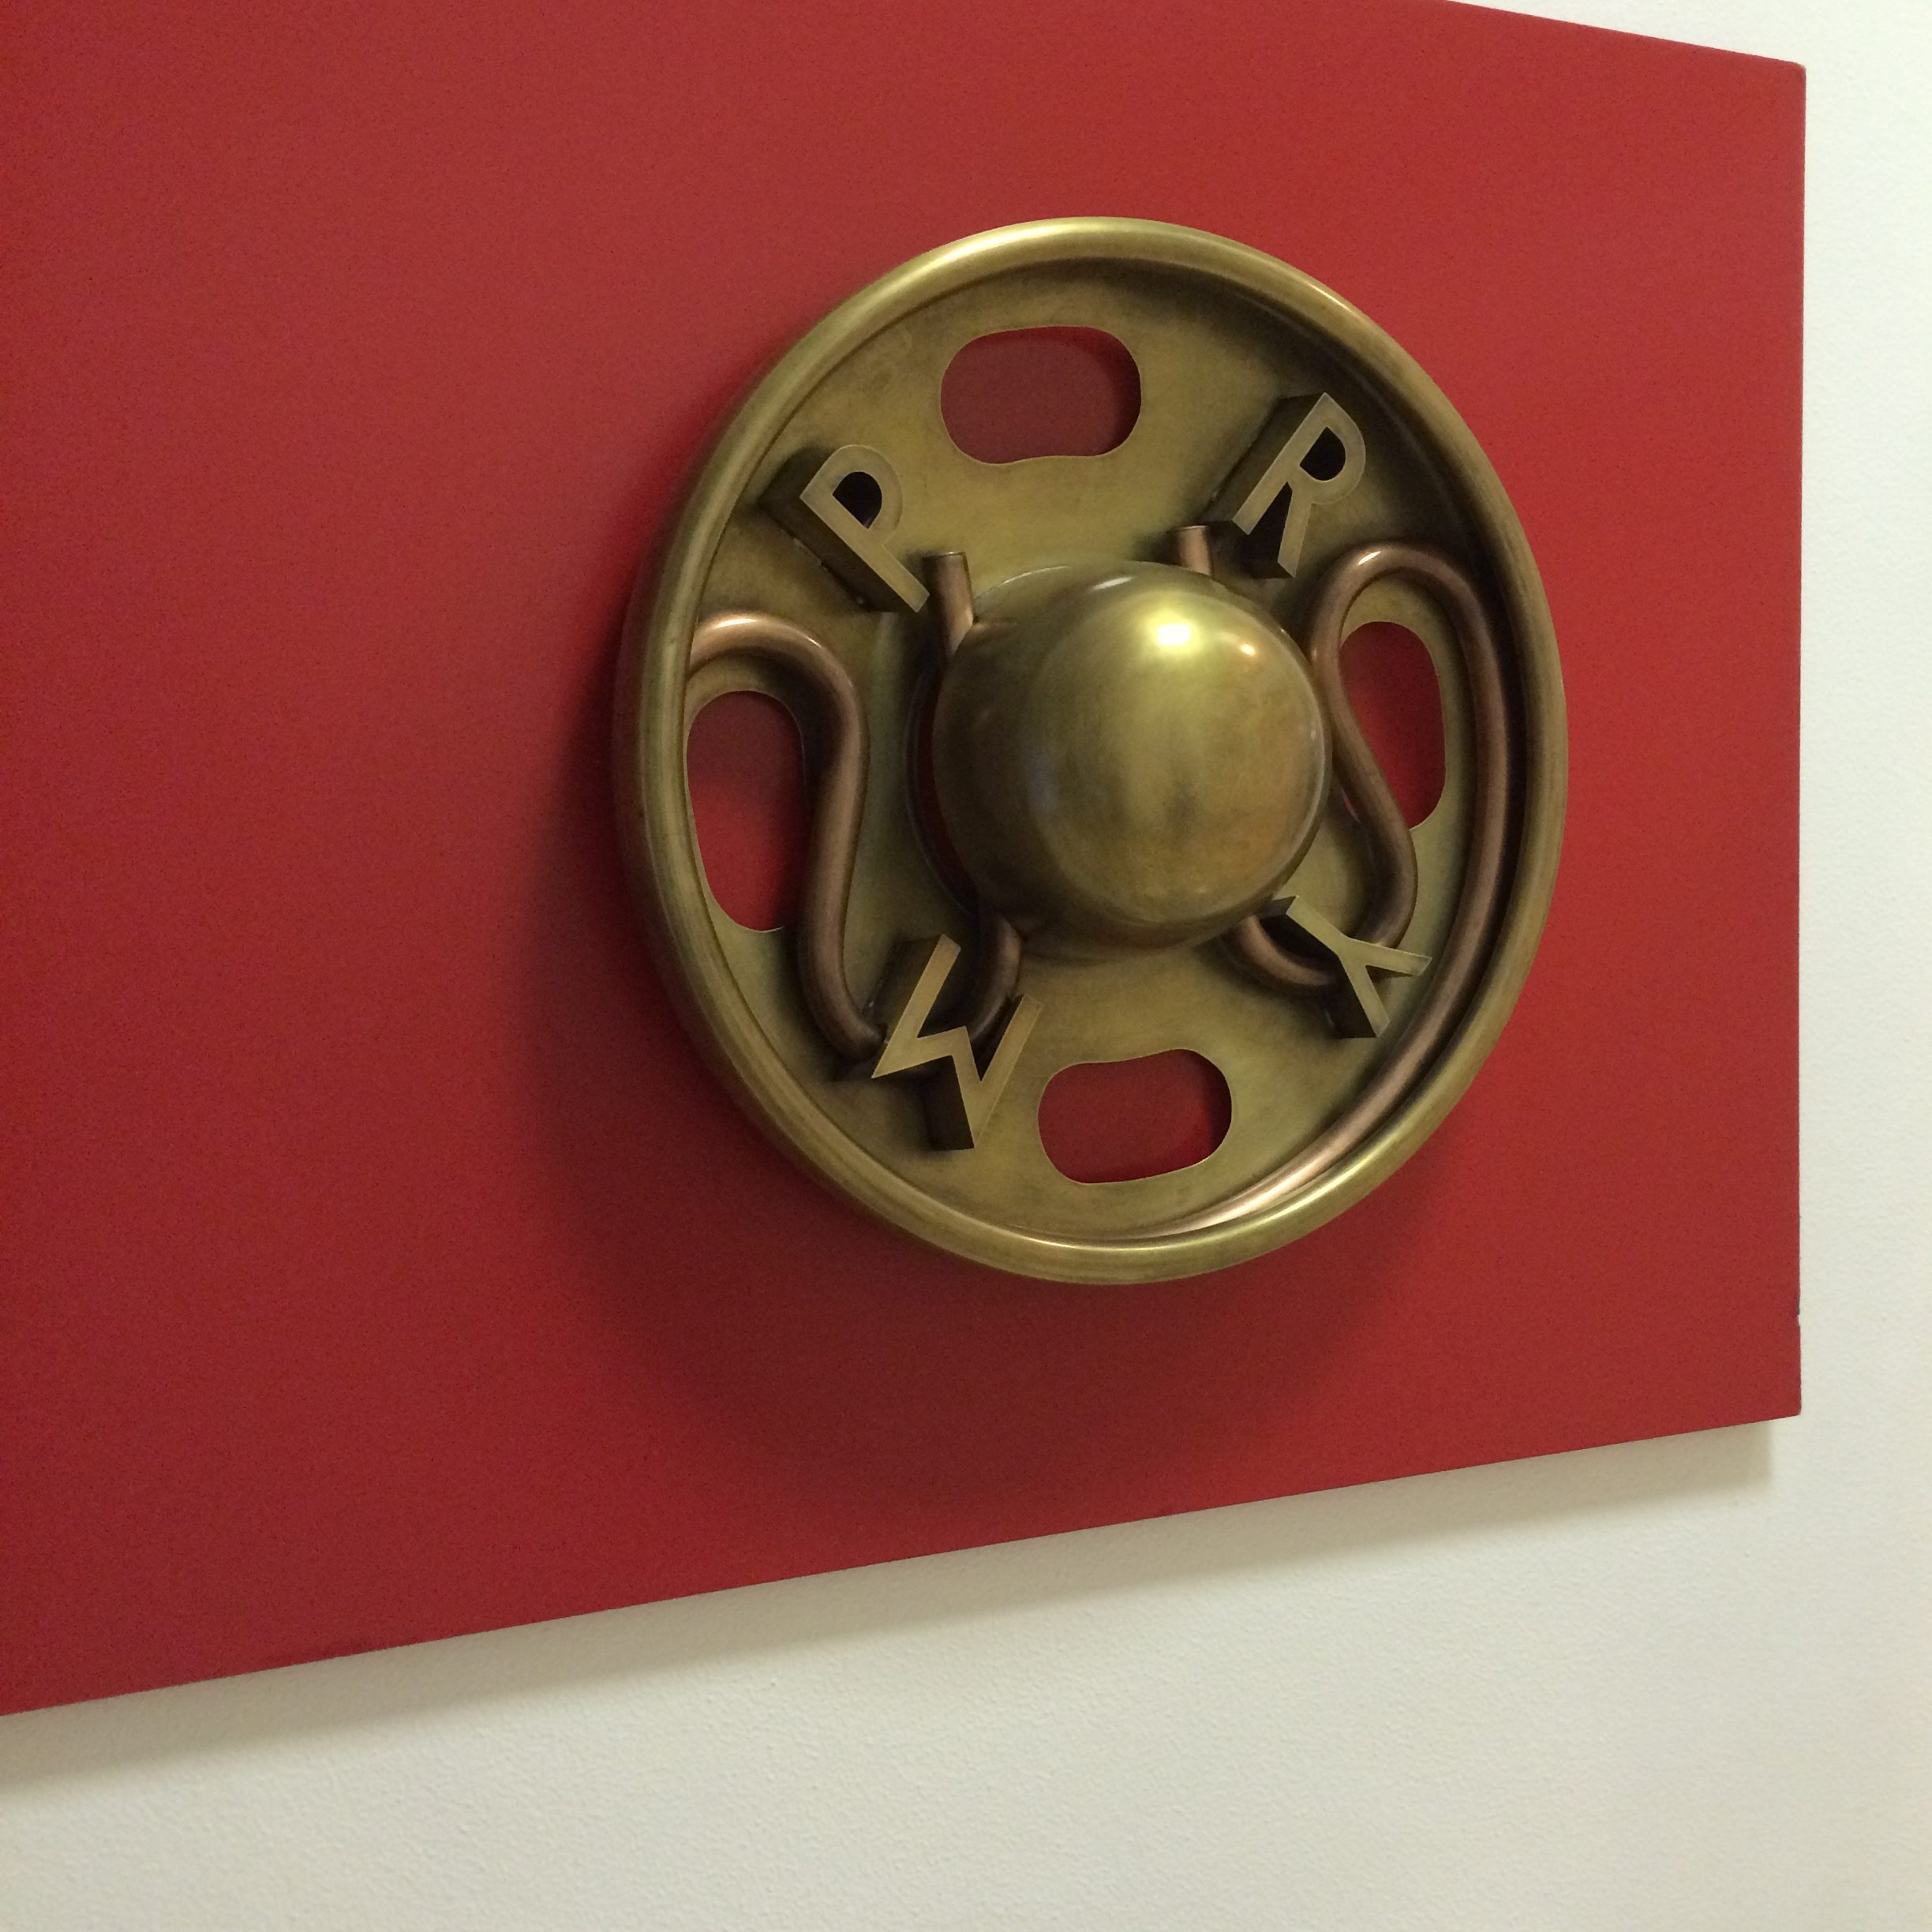 large display fastener at prym hq